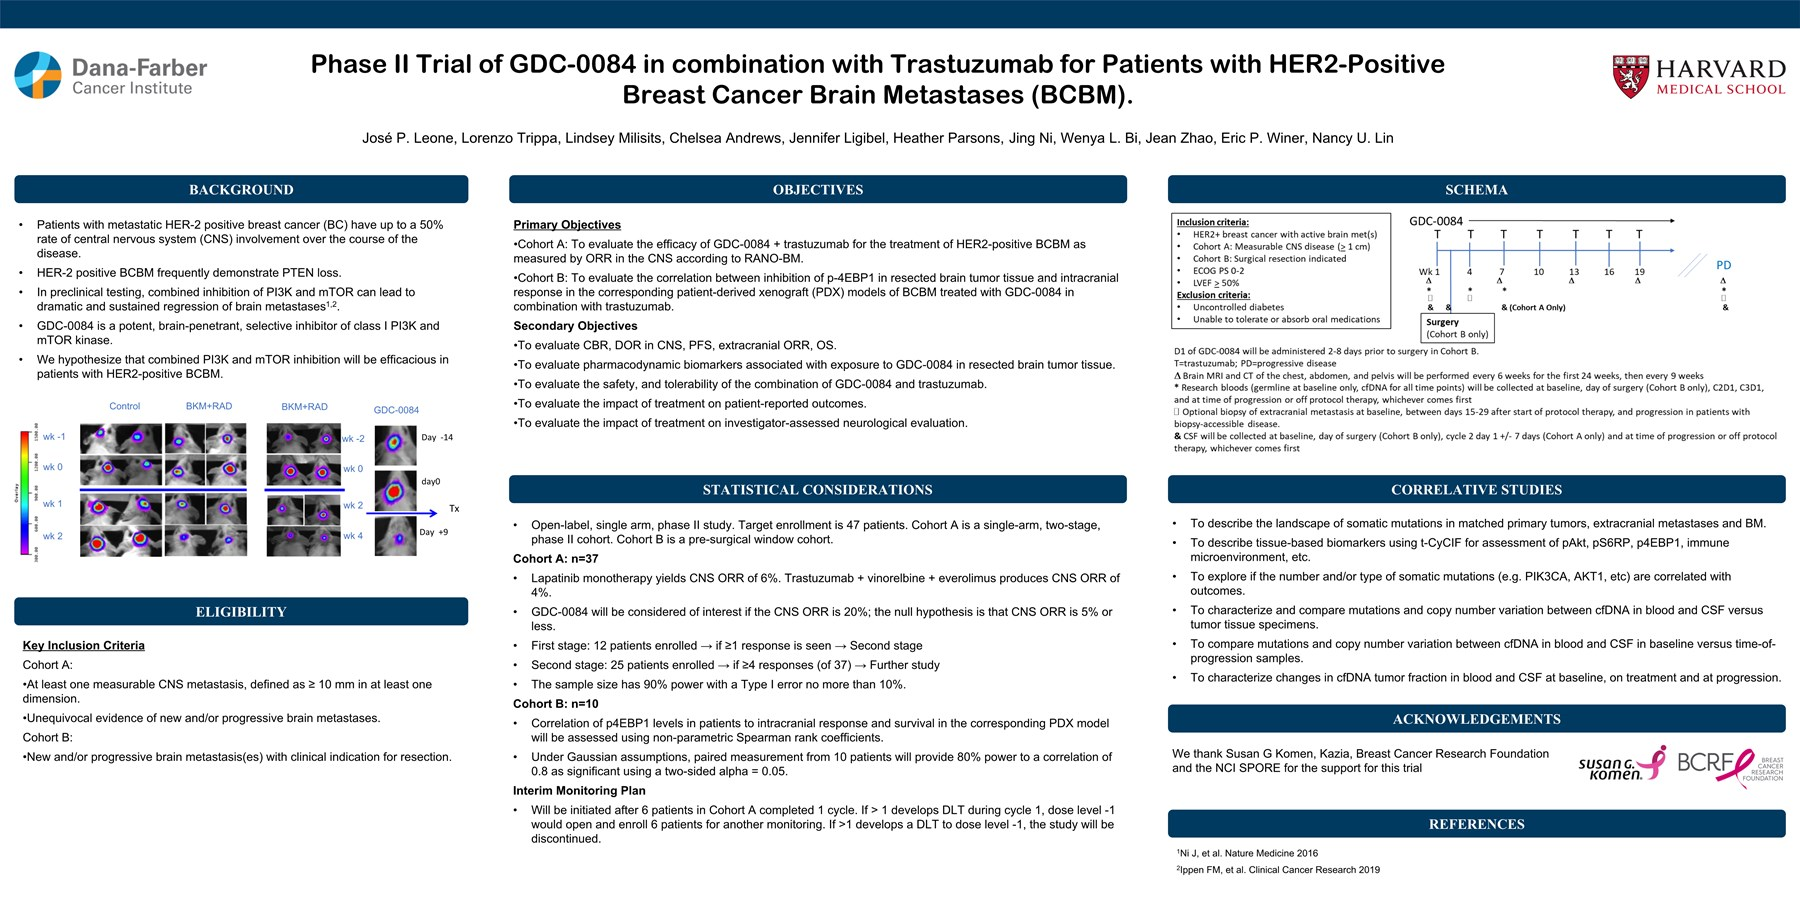 Phase II trial of GDC-0084 in combination with trastuzumab for patients with HER2-positive breast cancer brain metastases (BCBM)